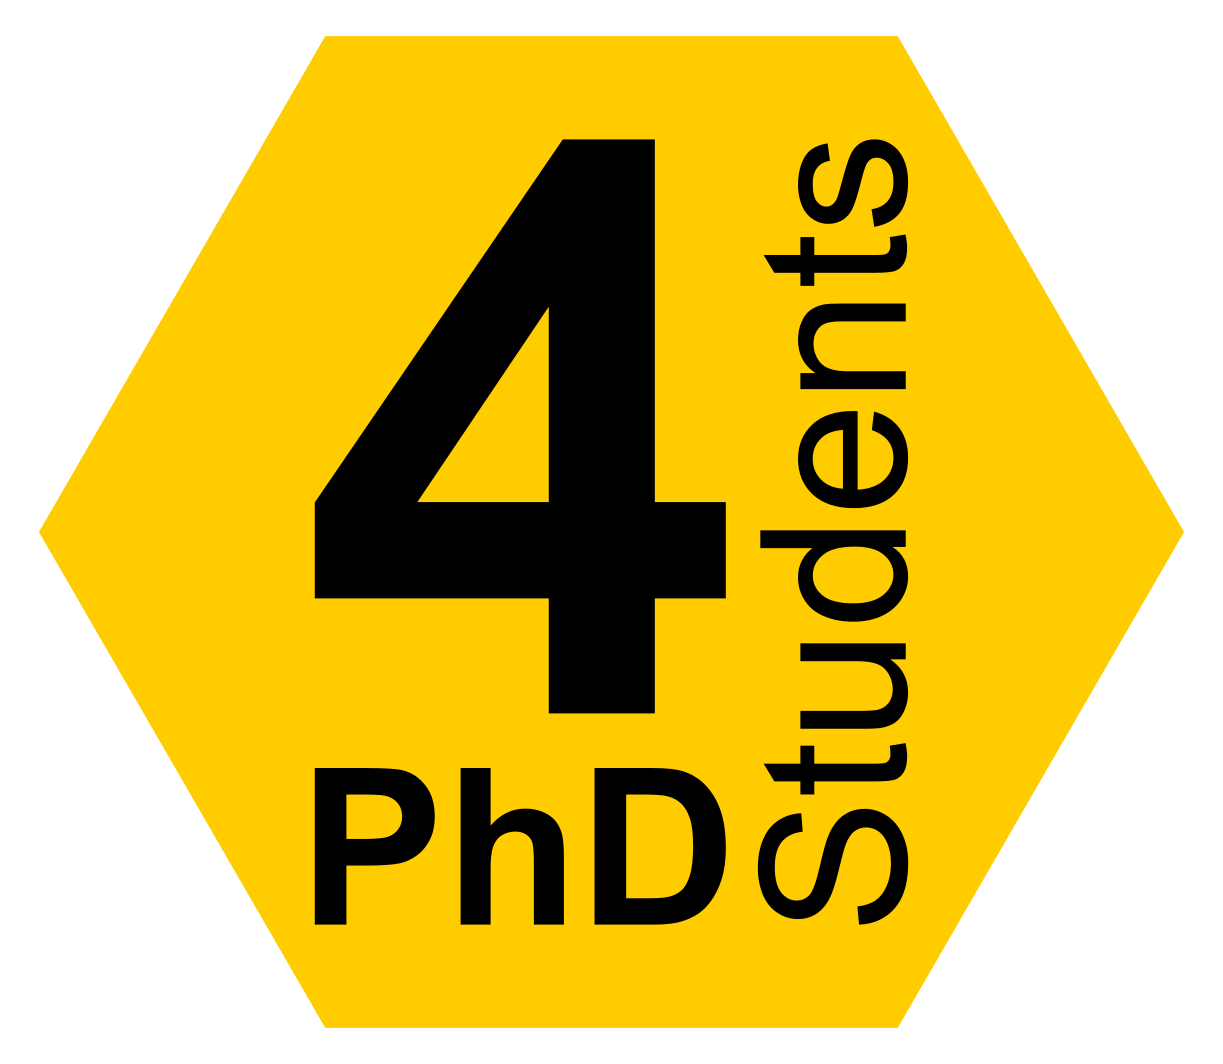 PhD Student Icon - Click this icon to navigate to their section on this page.